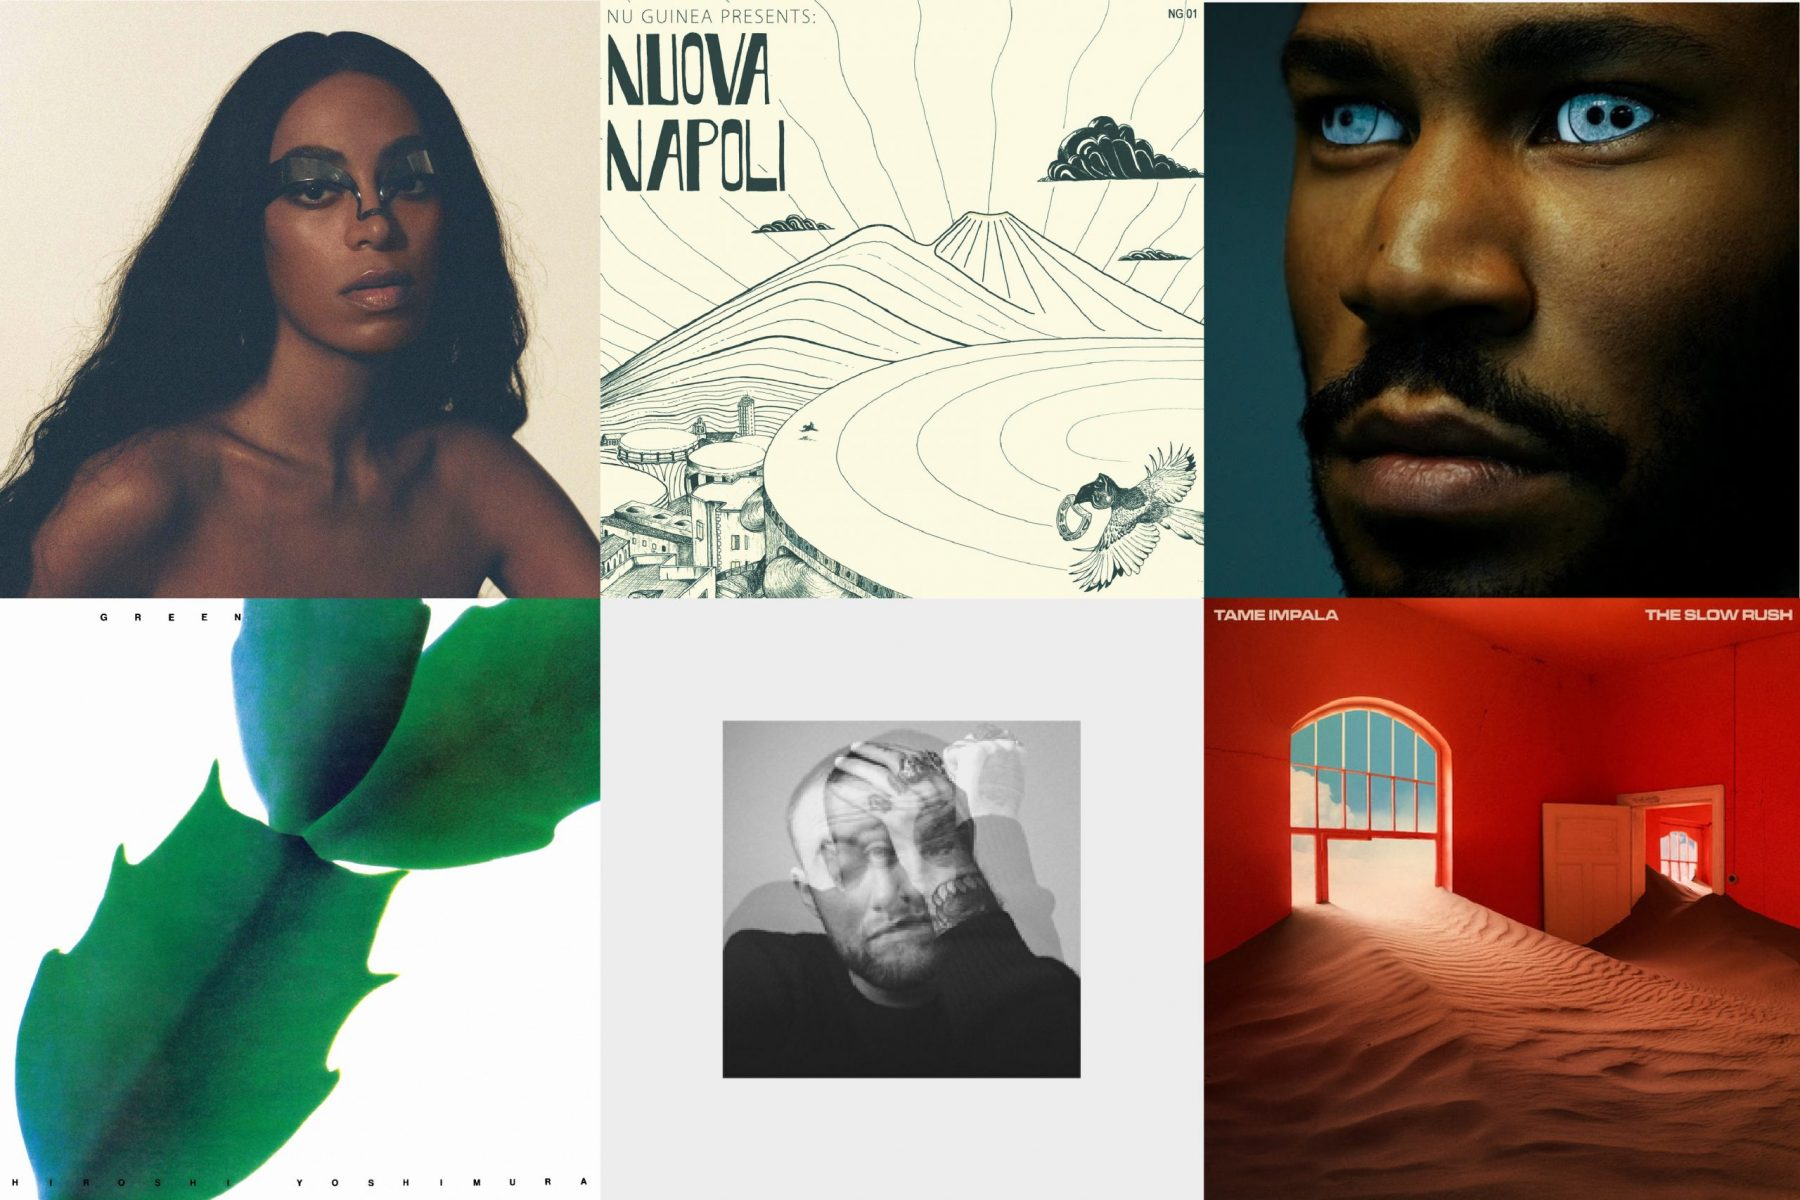 33 Recommends: top 10 albums (from the last 12 months)